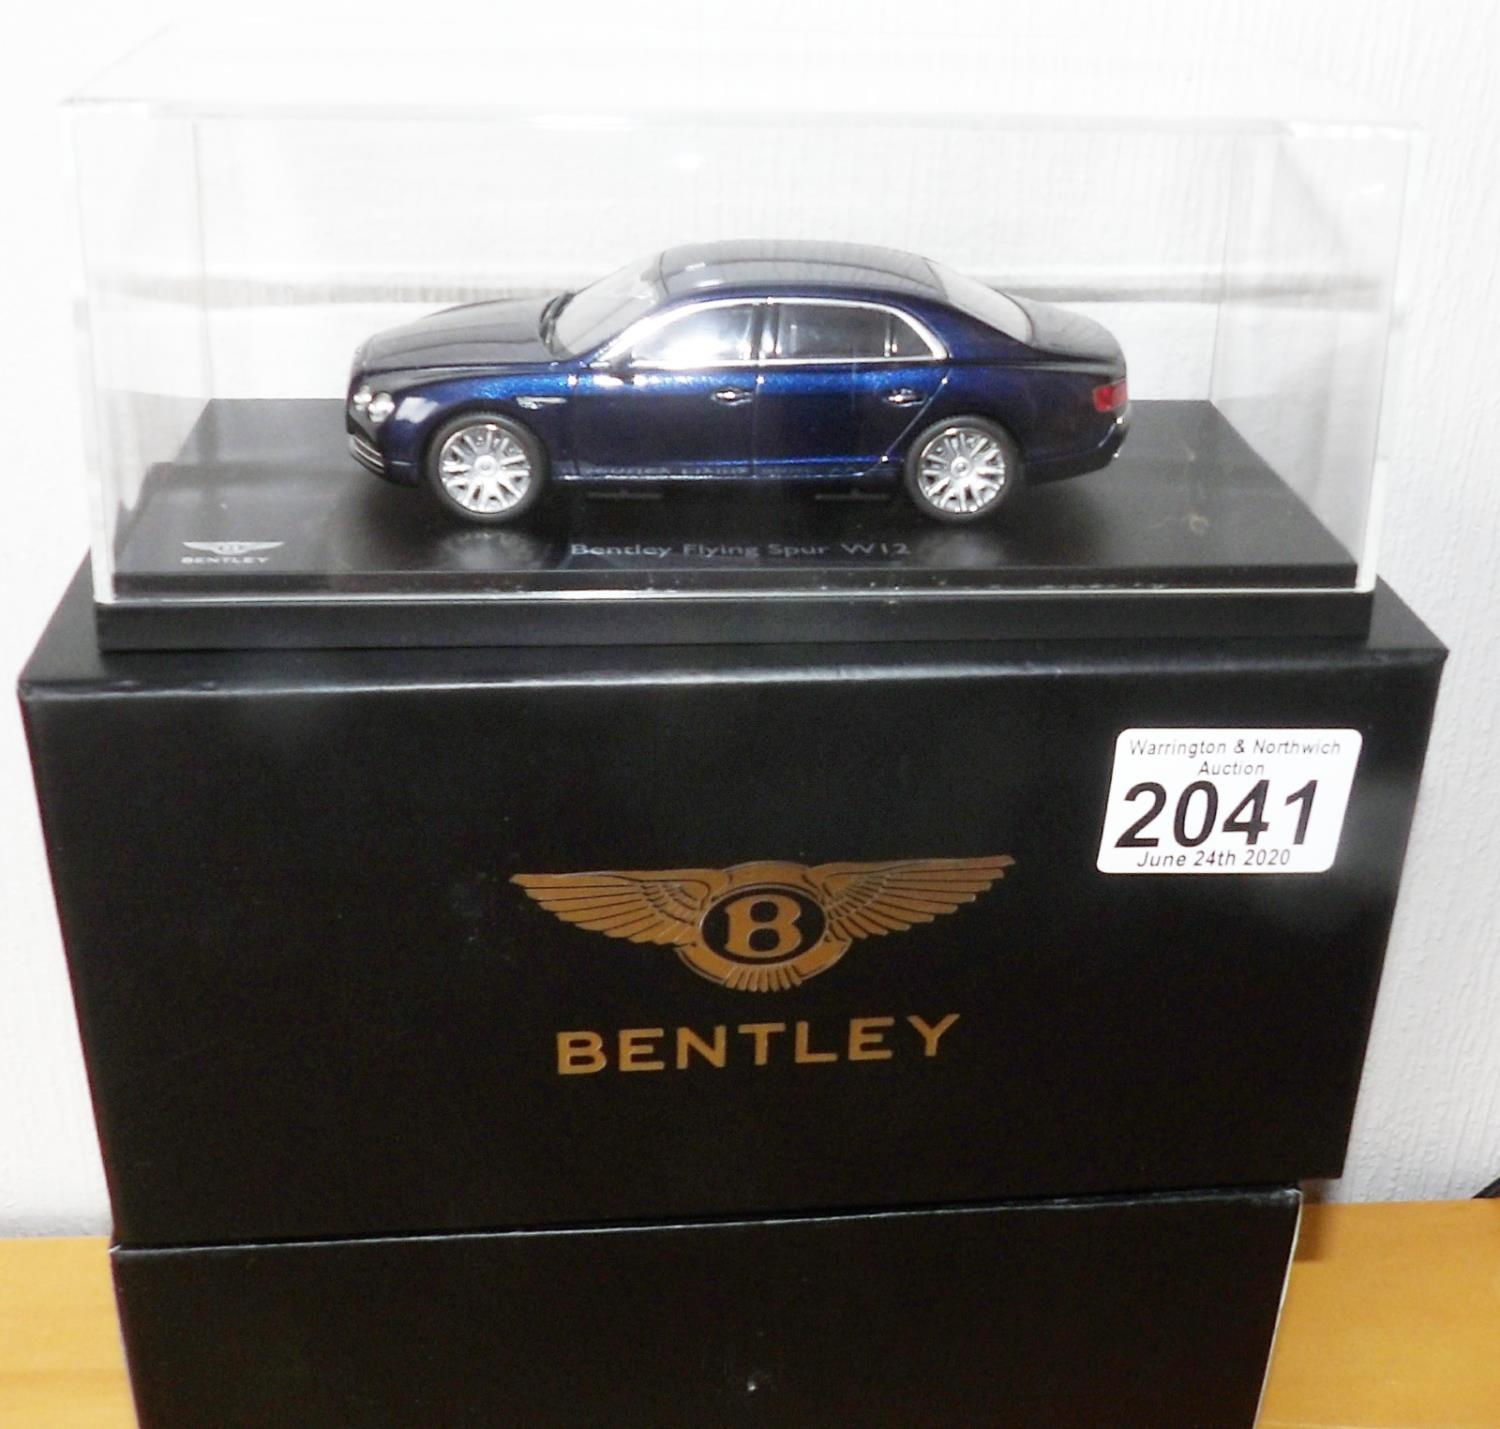 Lot 2041 - KYOSHO 1.43 Scale BENTLEY Flying Spur W12 (Peacock). P&P Group 1 (£14+VAT for the first lot and £1+